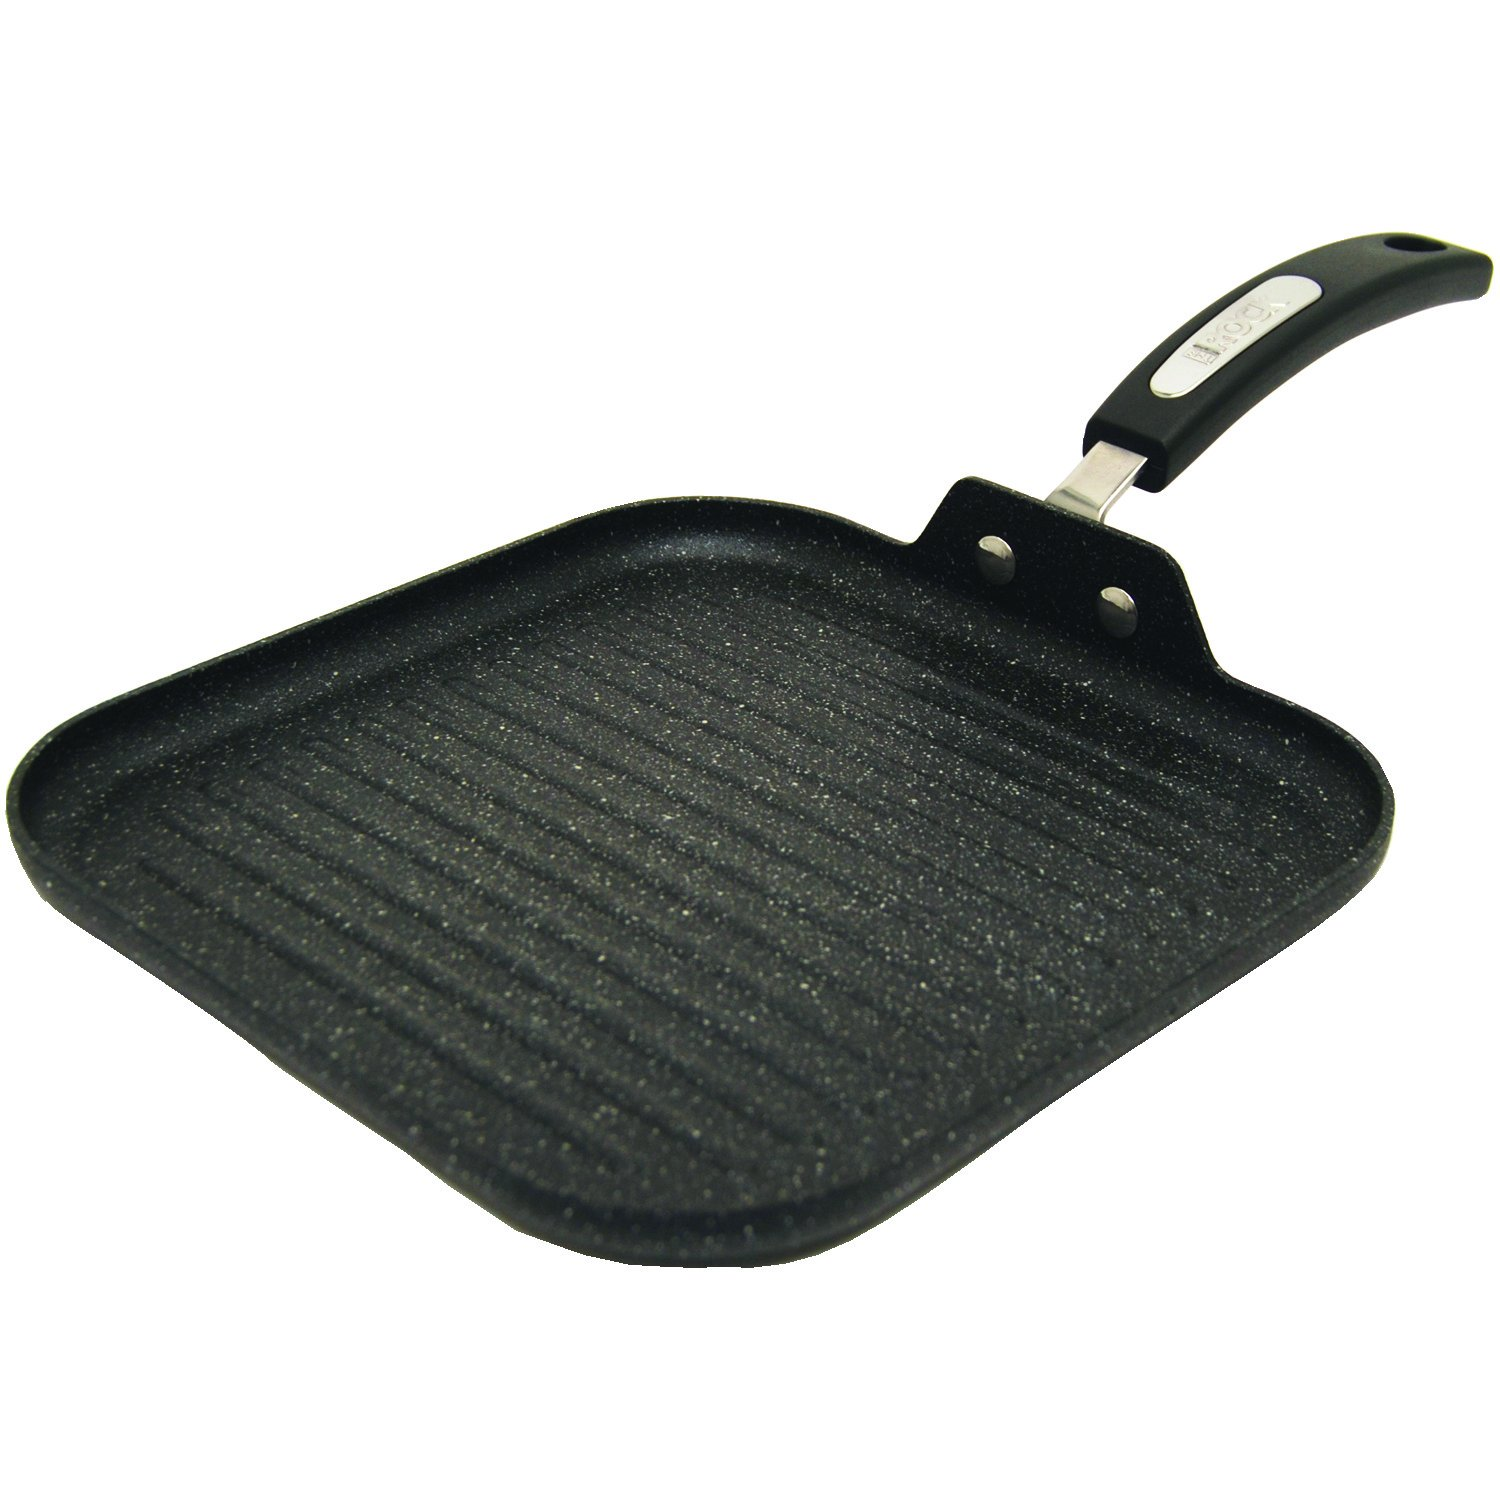 The Rock(tm) By Starfrit(r) 030321-006-000 10'' Grill Pan with Bakelite(R) Handles (R), 18.75''x10.25''x3.5''